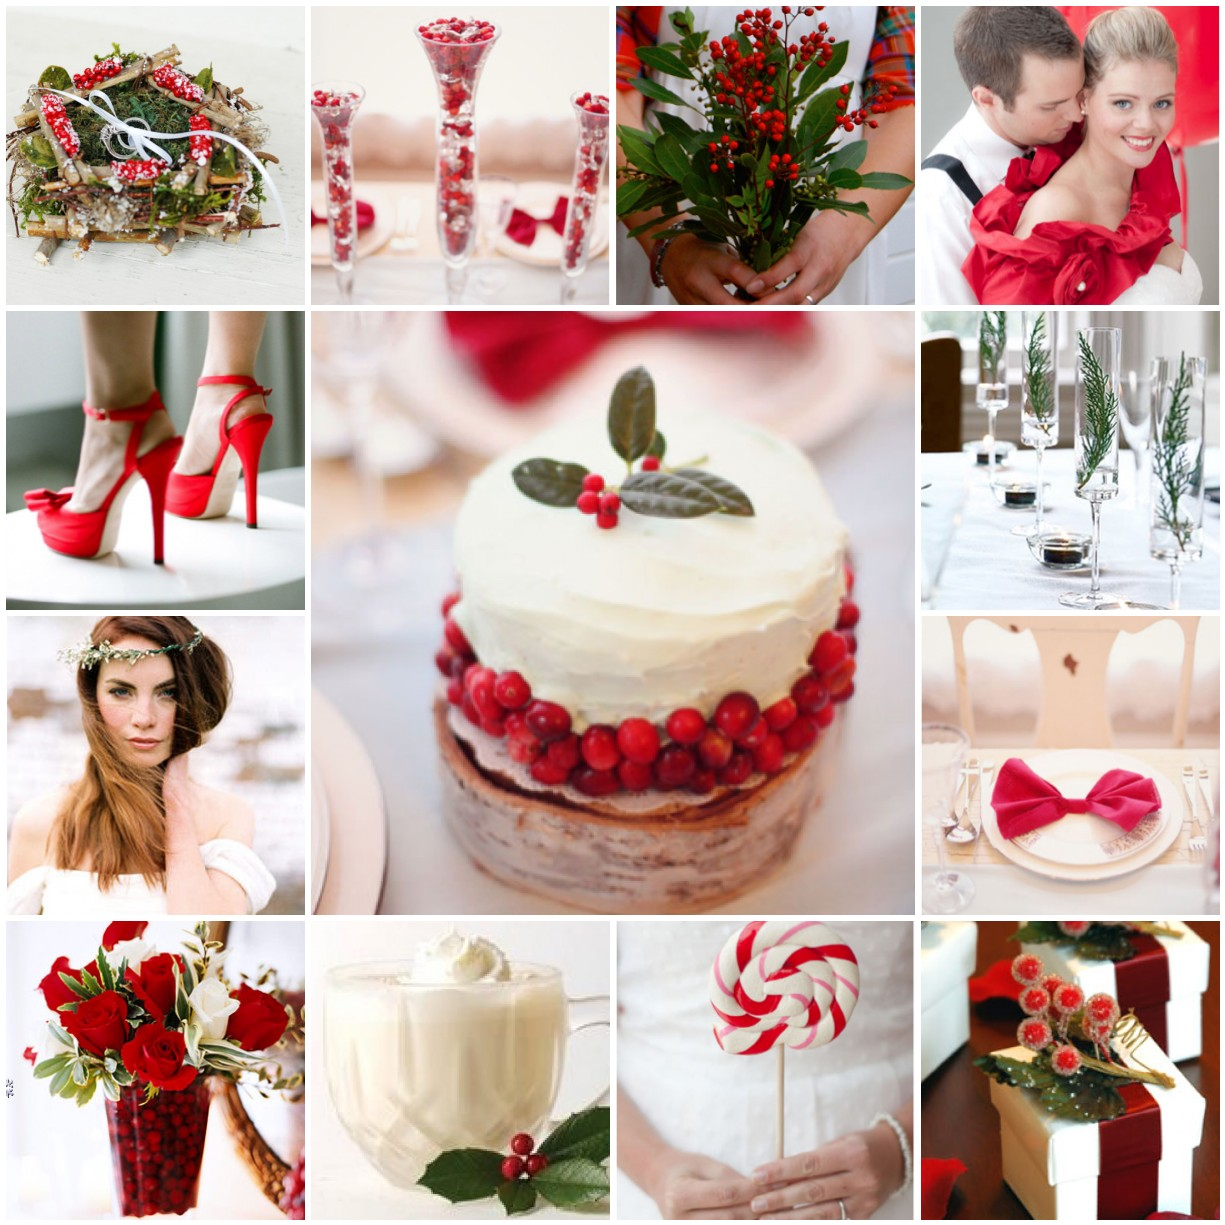 Christmas Wedding Theme Ideas: Cranberries And Holly – A Christmas Wedding